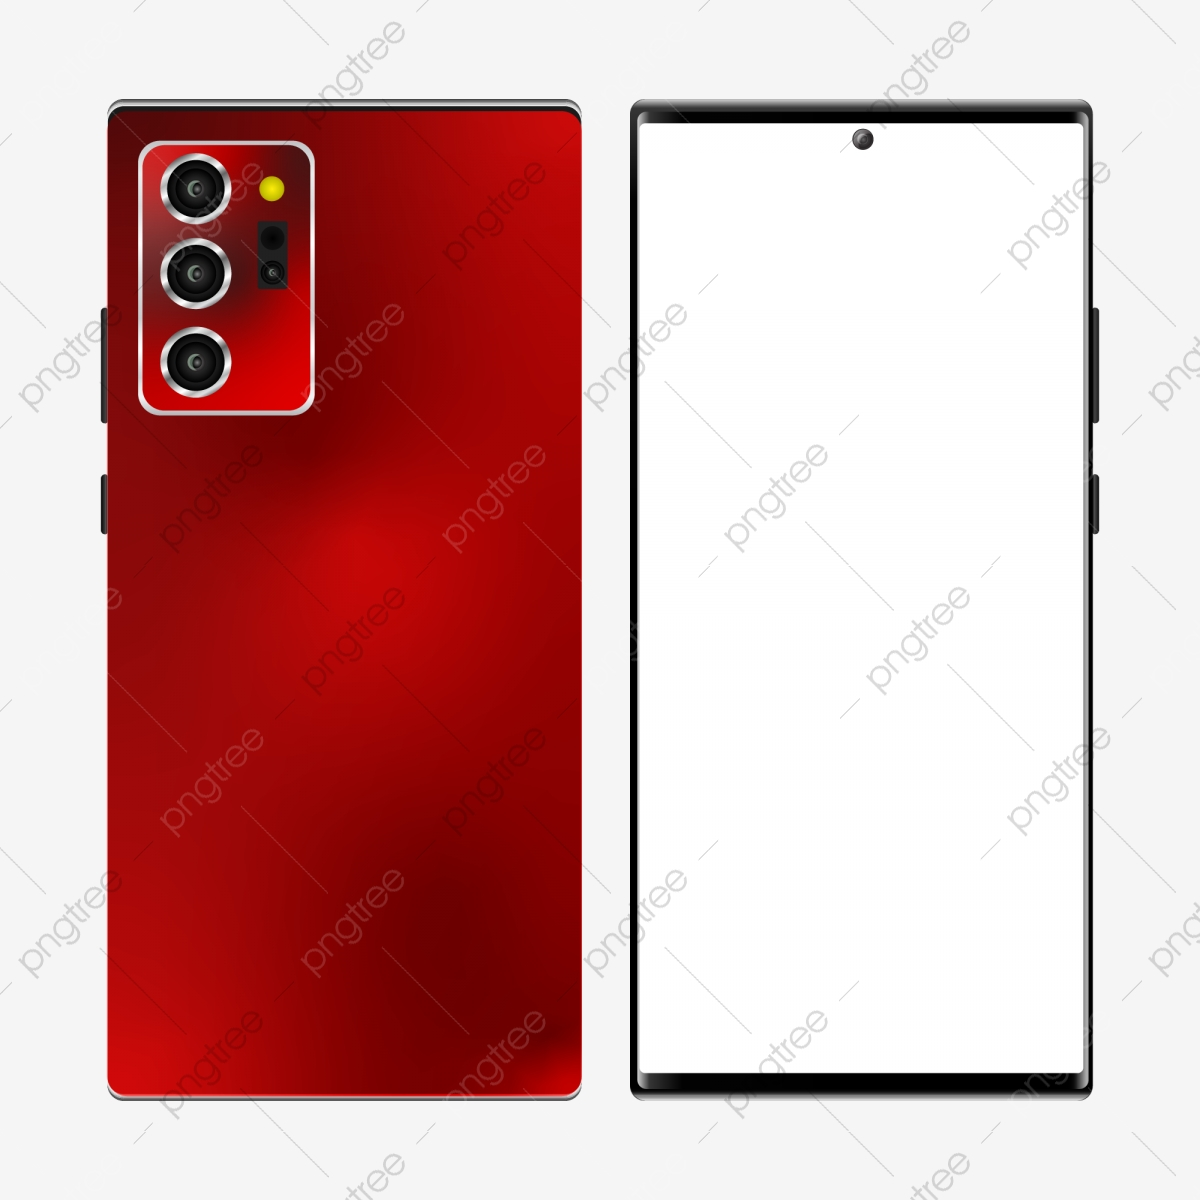 Mockup Samsung Galaxy Note 20 In Red Color Template Technology New Png And Vector With Transparent Background For Free Download